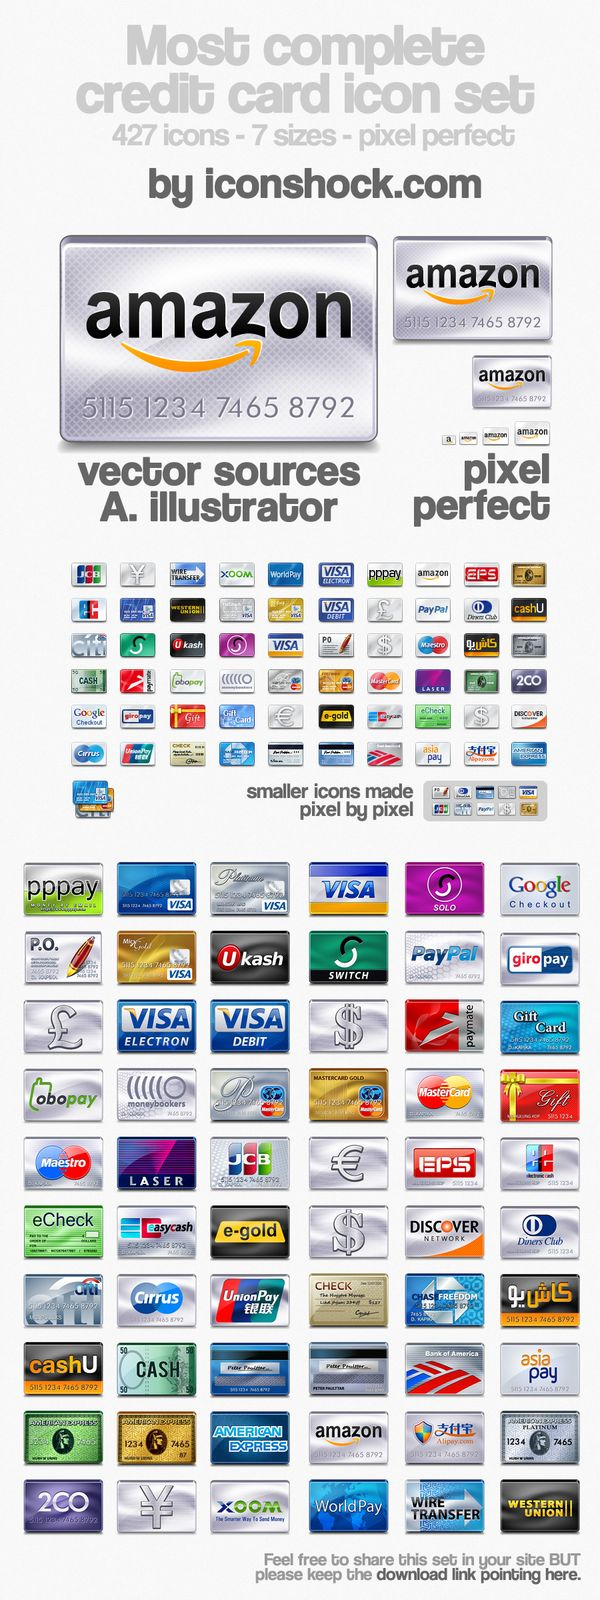 Free Credit Card Icons Pack: 457 Payment and Credit Card Icons